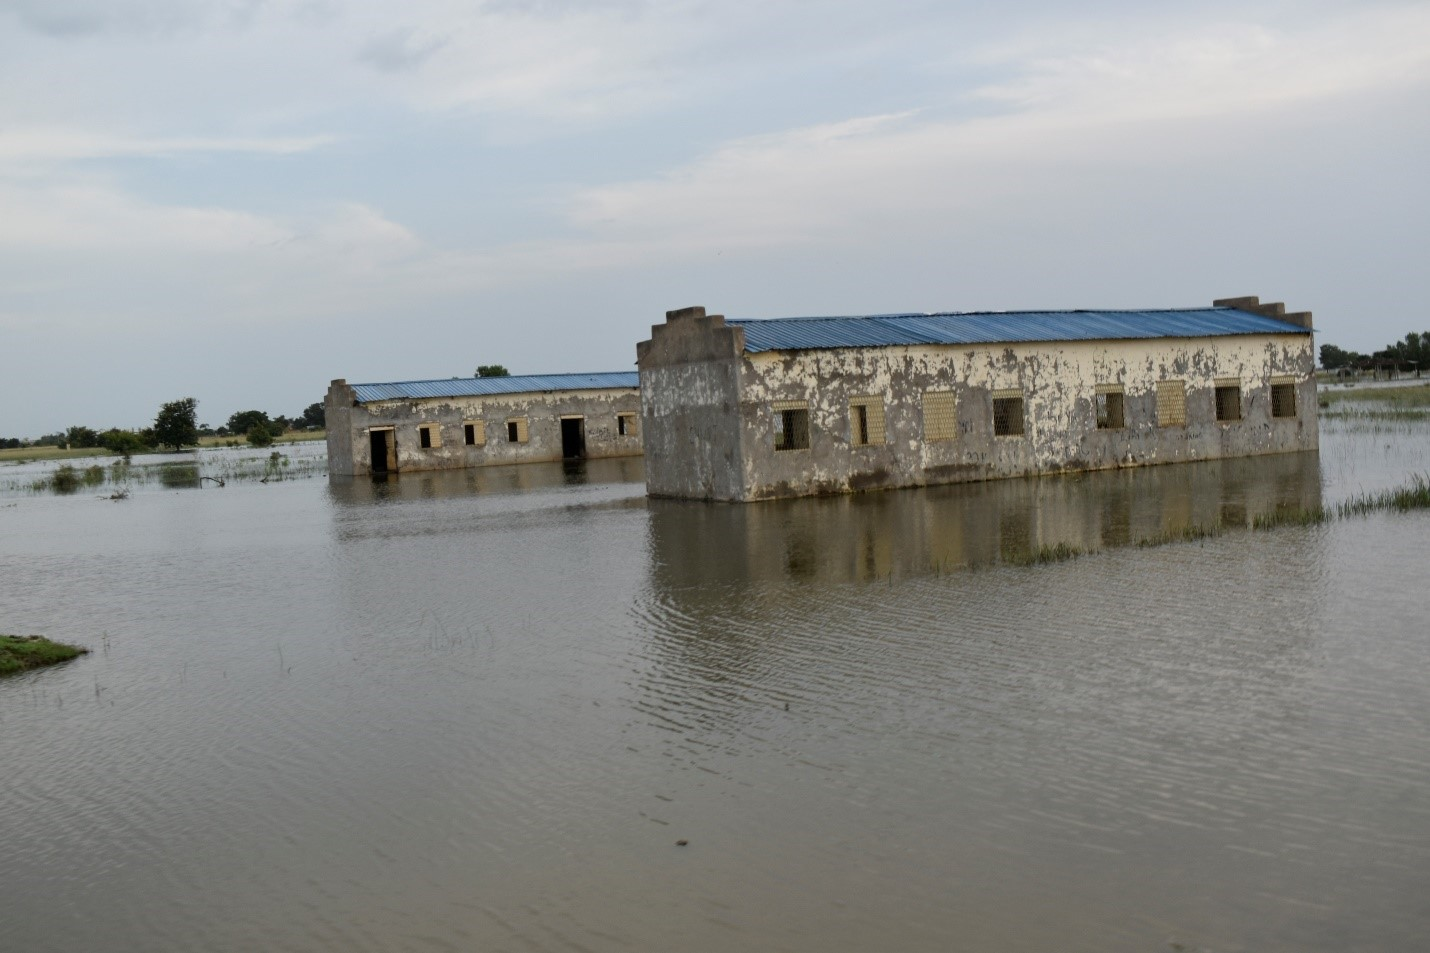 '90 percent of Unity State under water'